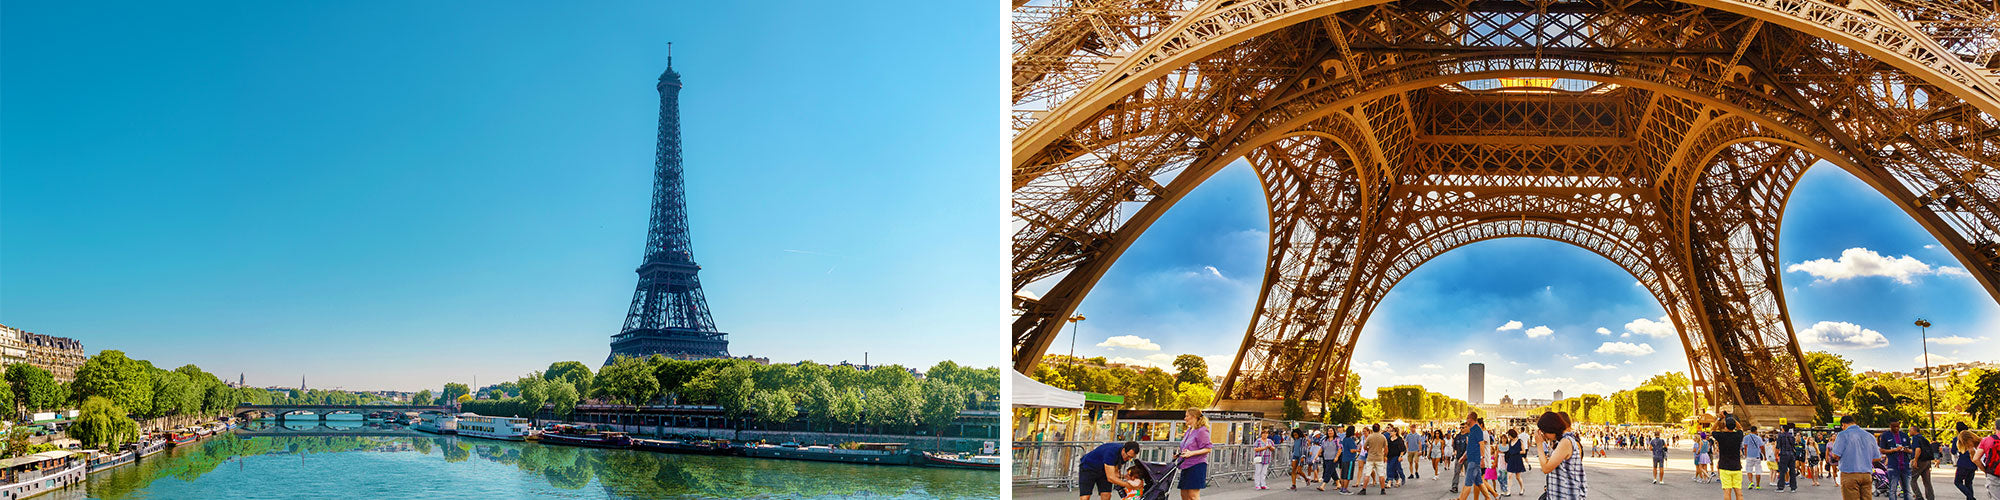 Fine Art Photography Prints of Eiffel Tower  - Satellite Images of Earth - Point Two Design